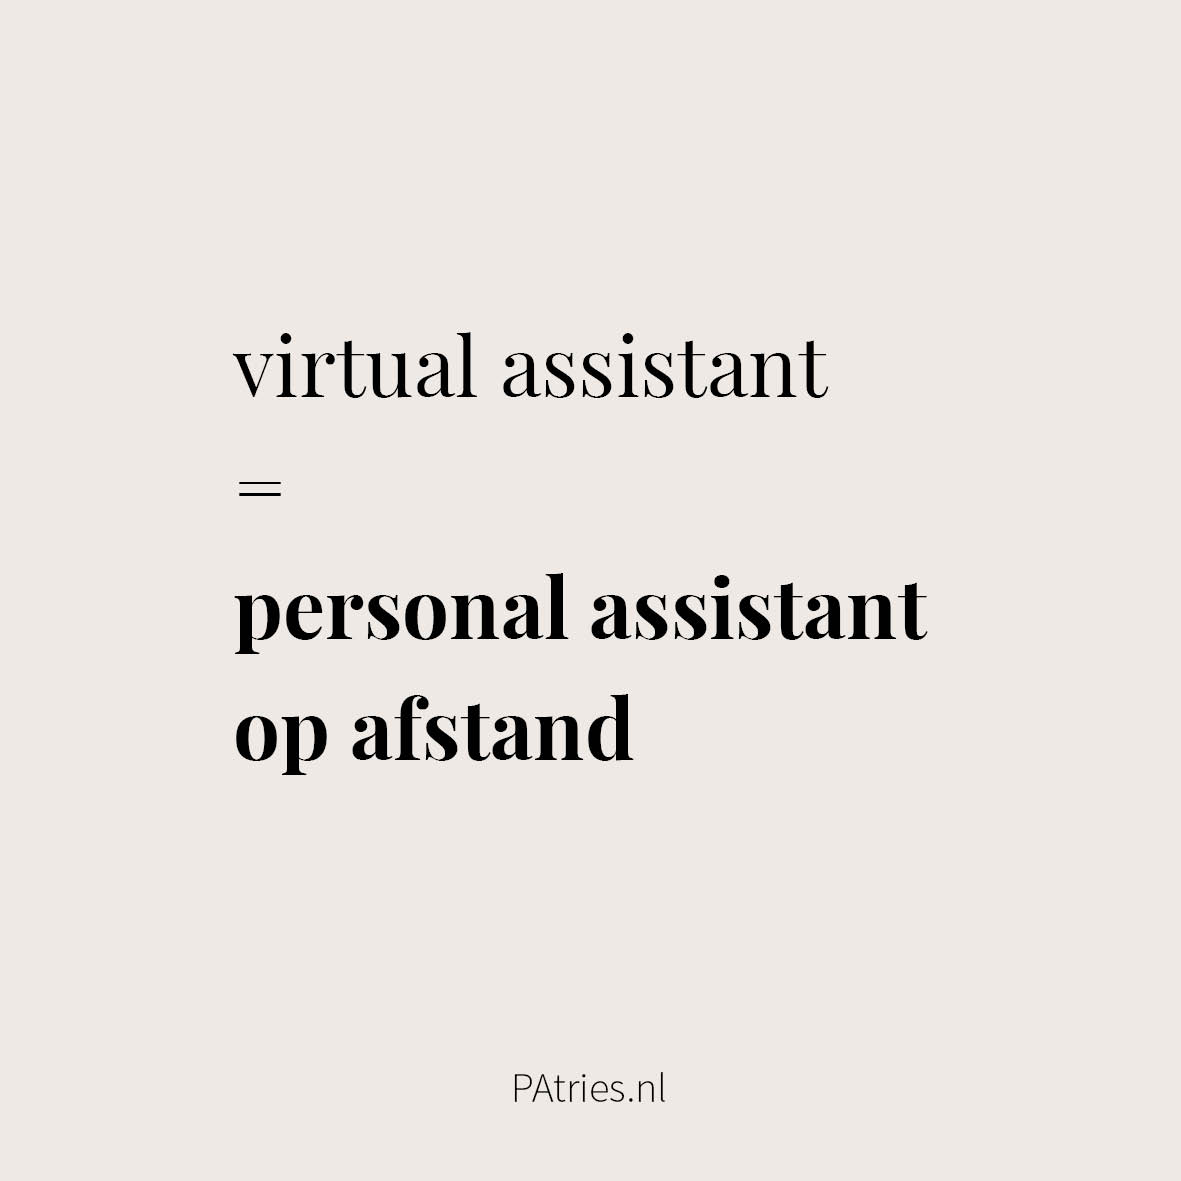 wat is een virtual assistant PAtries